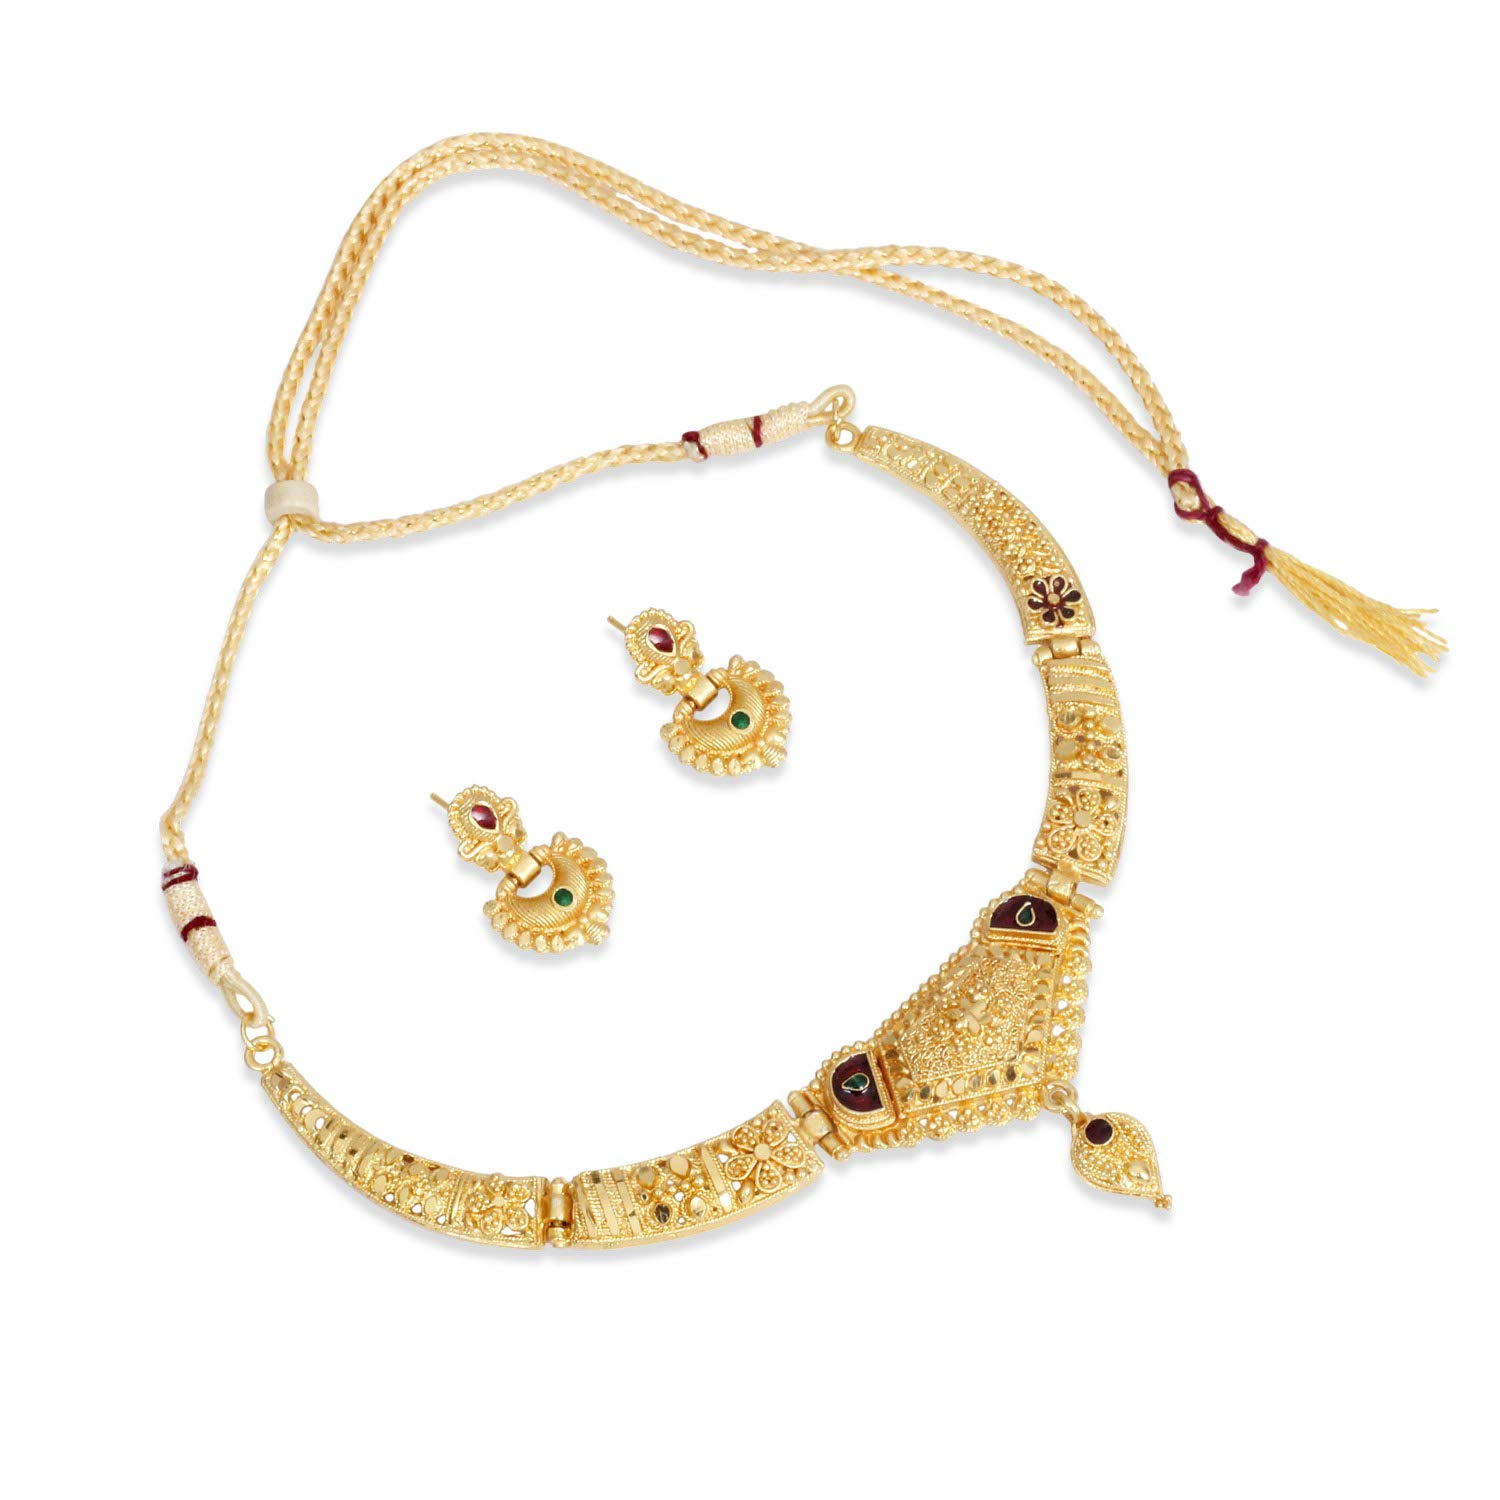 Buy Sanara Traditional South Indian Gold Plated Choker Necklace